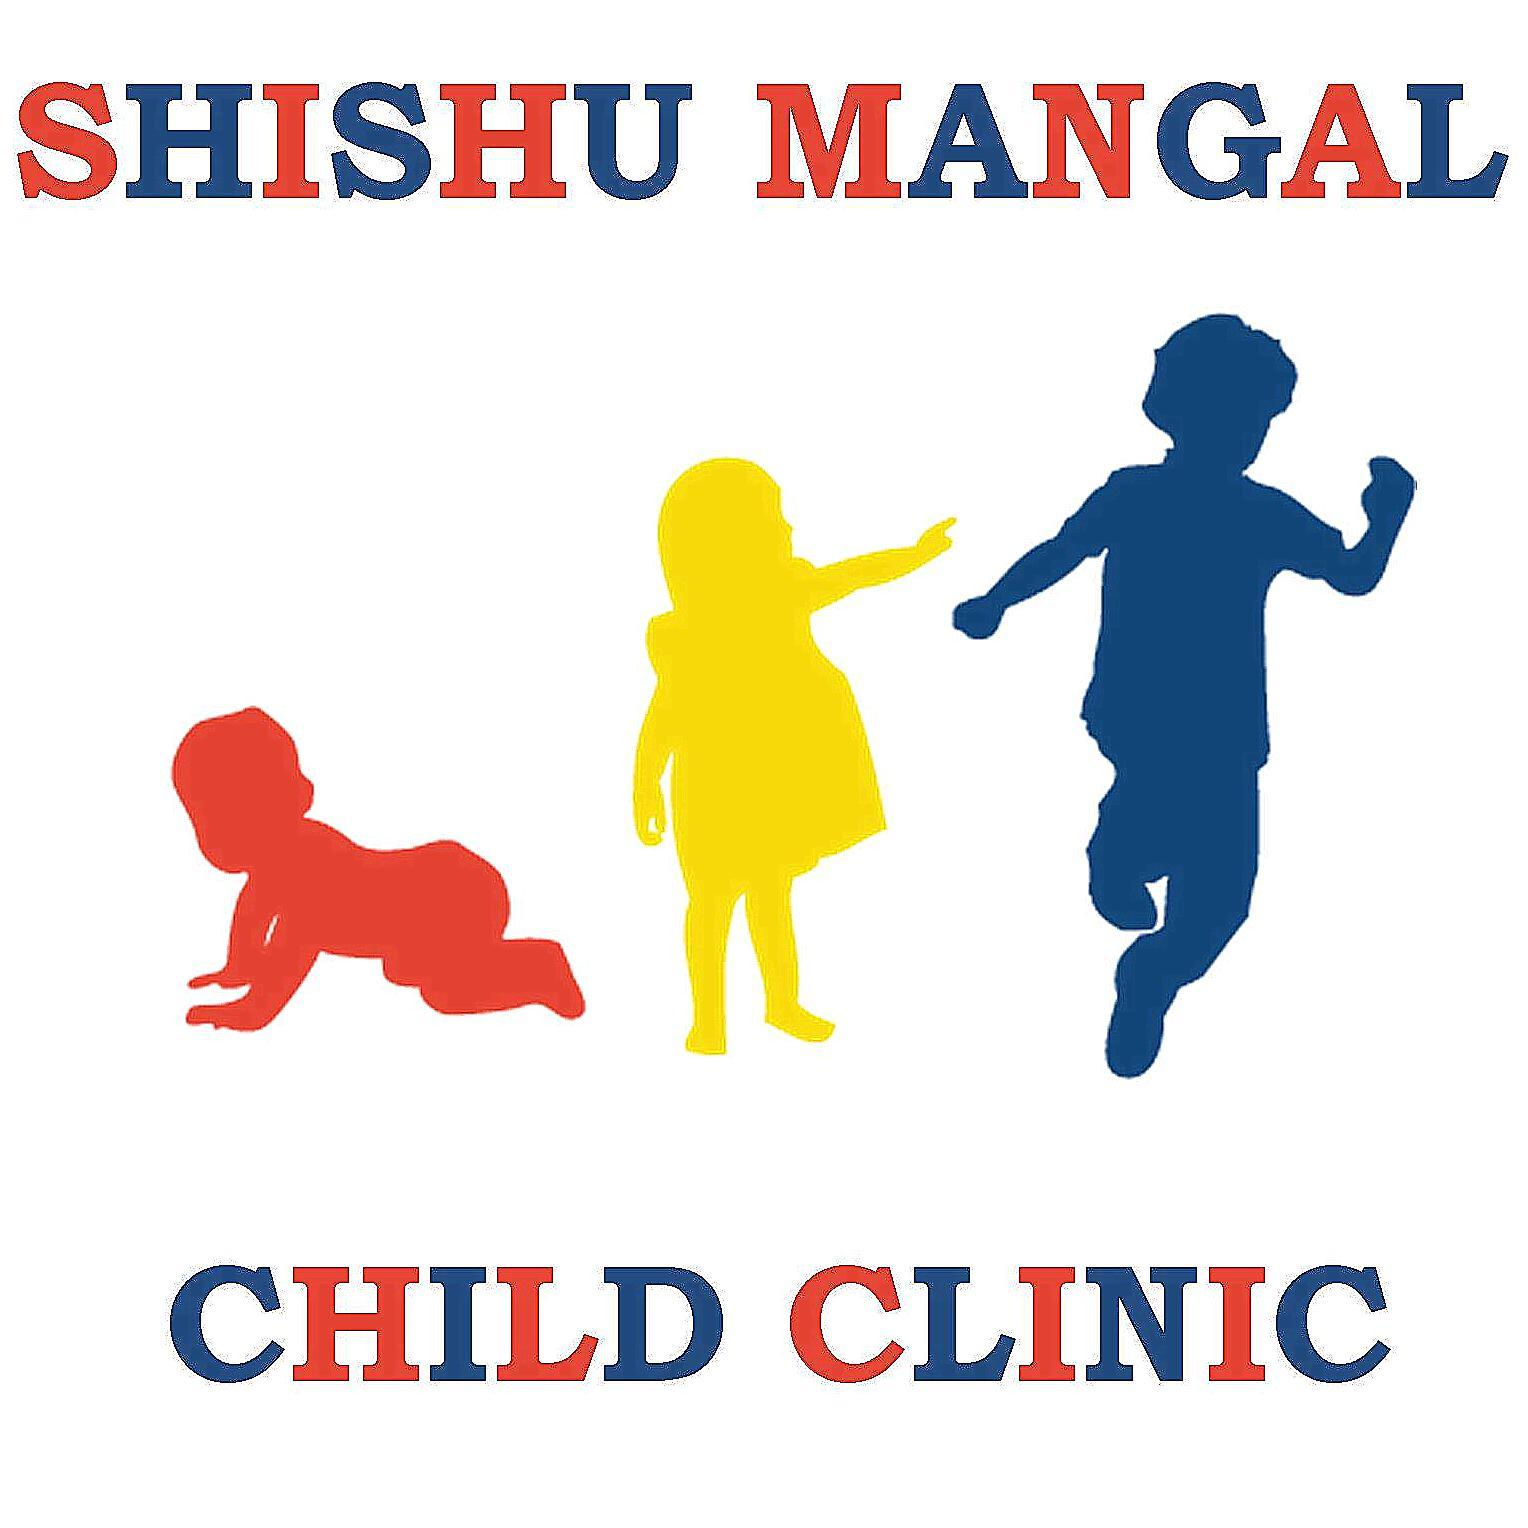 Shishu Mangal Child Clinic